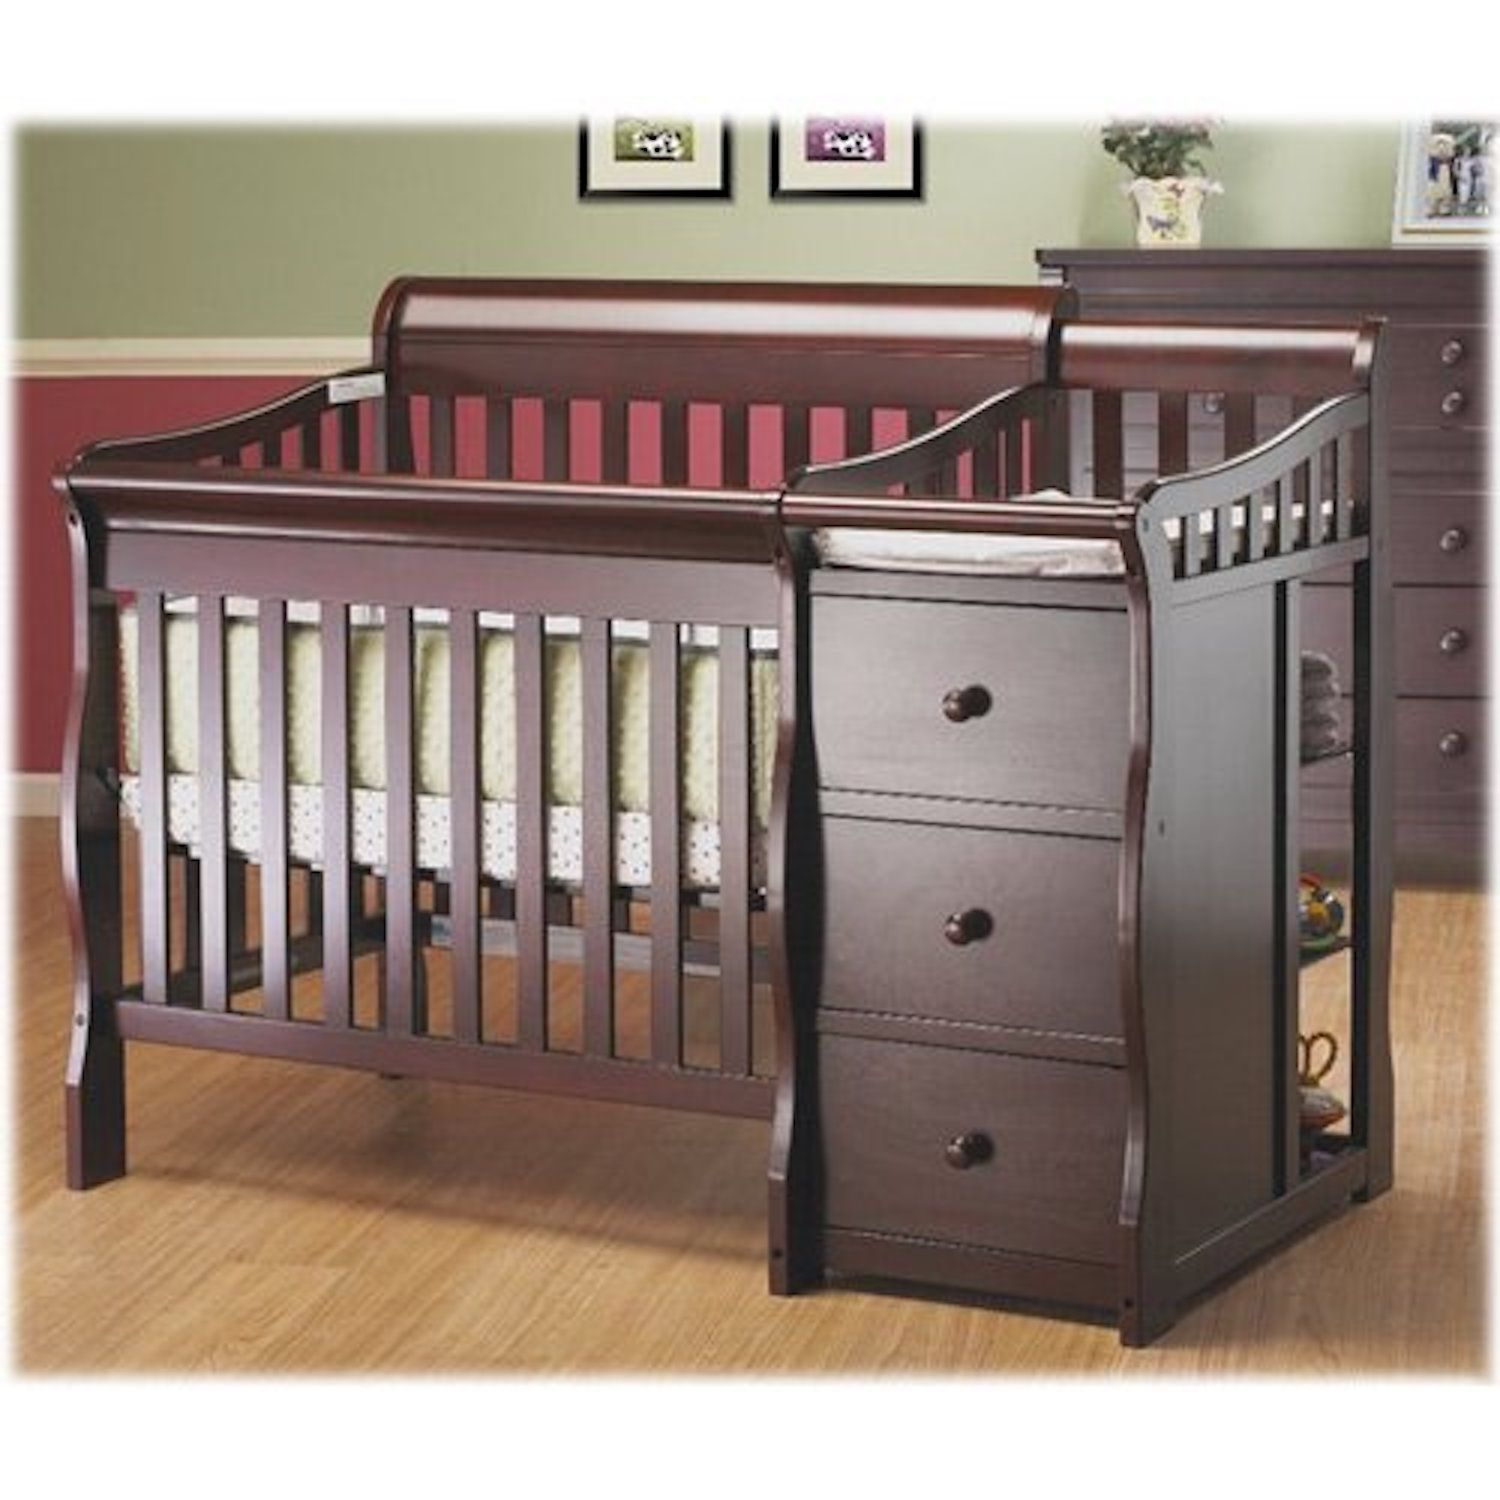 Which crib style is best for your baby and nursery